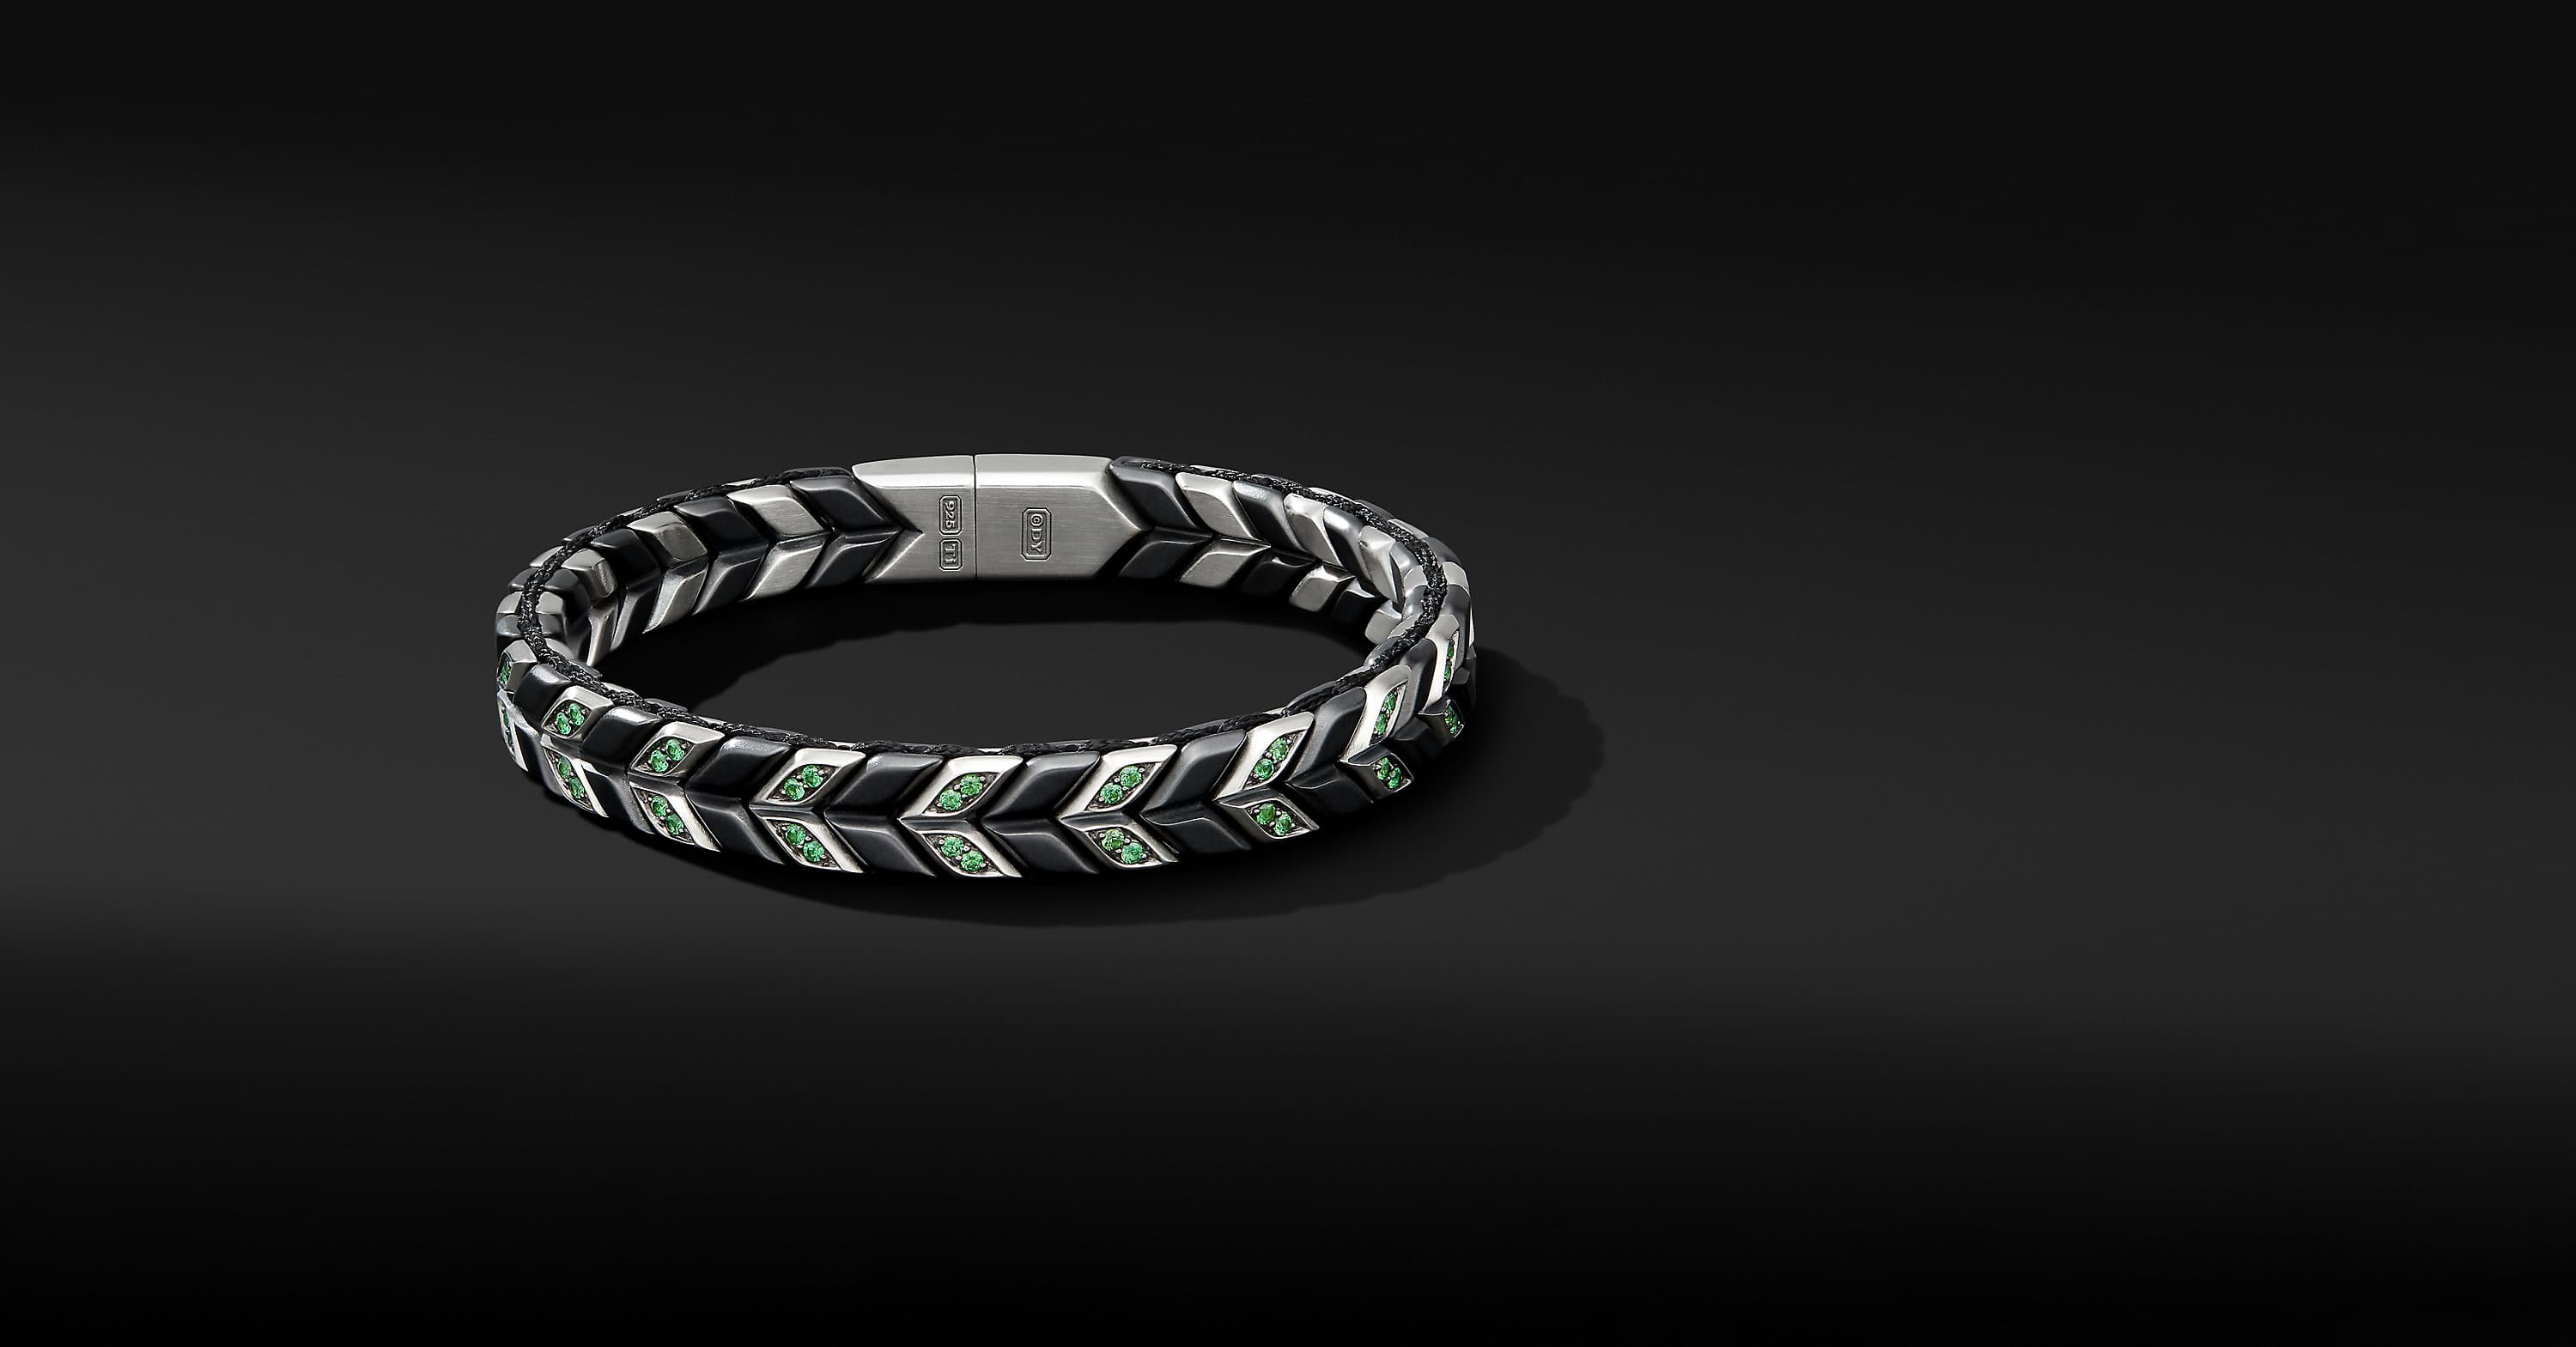 Chevron Narrow Woven Bracelet in Black Titanium